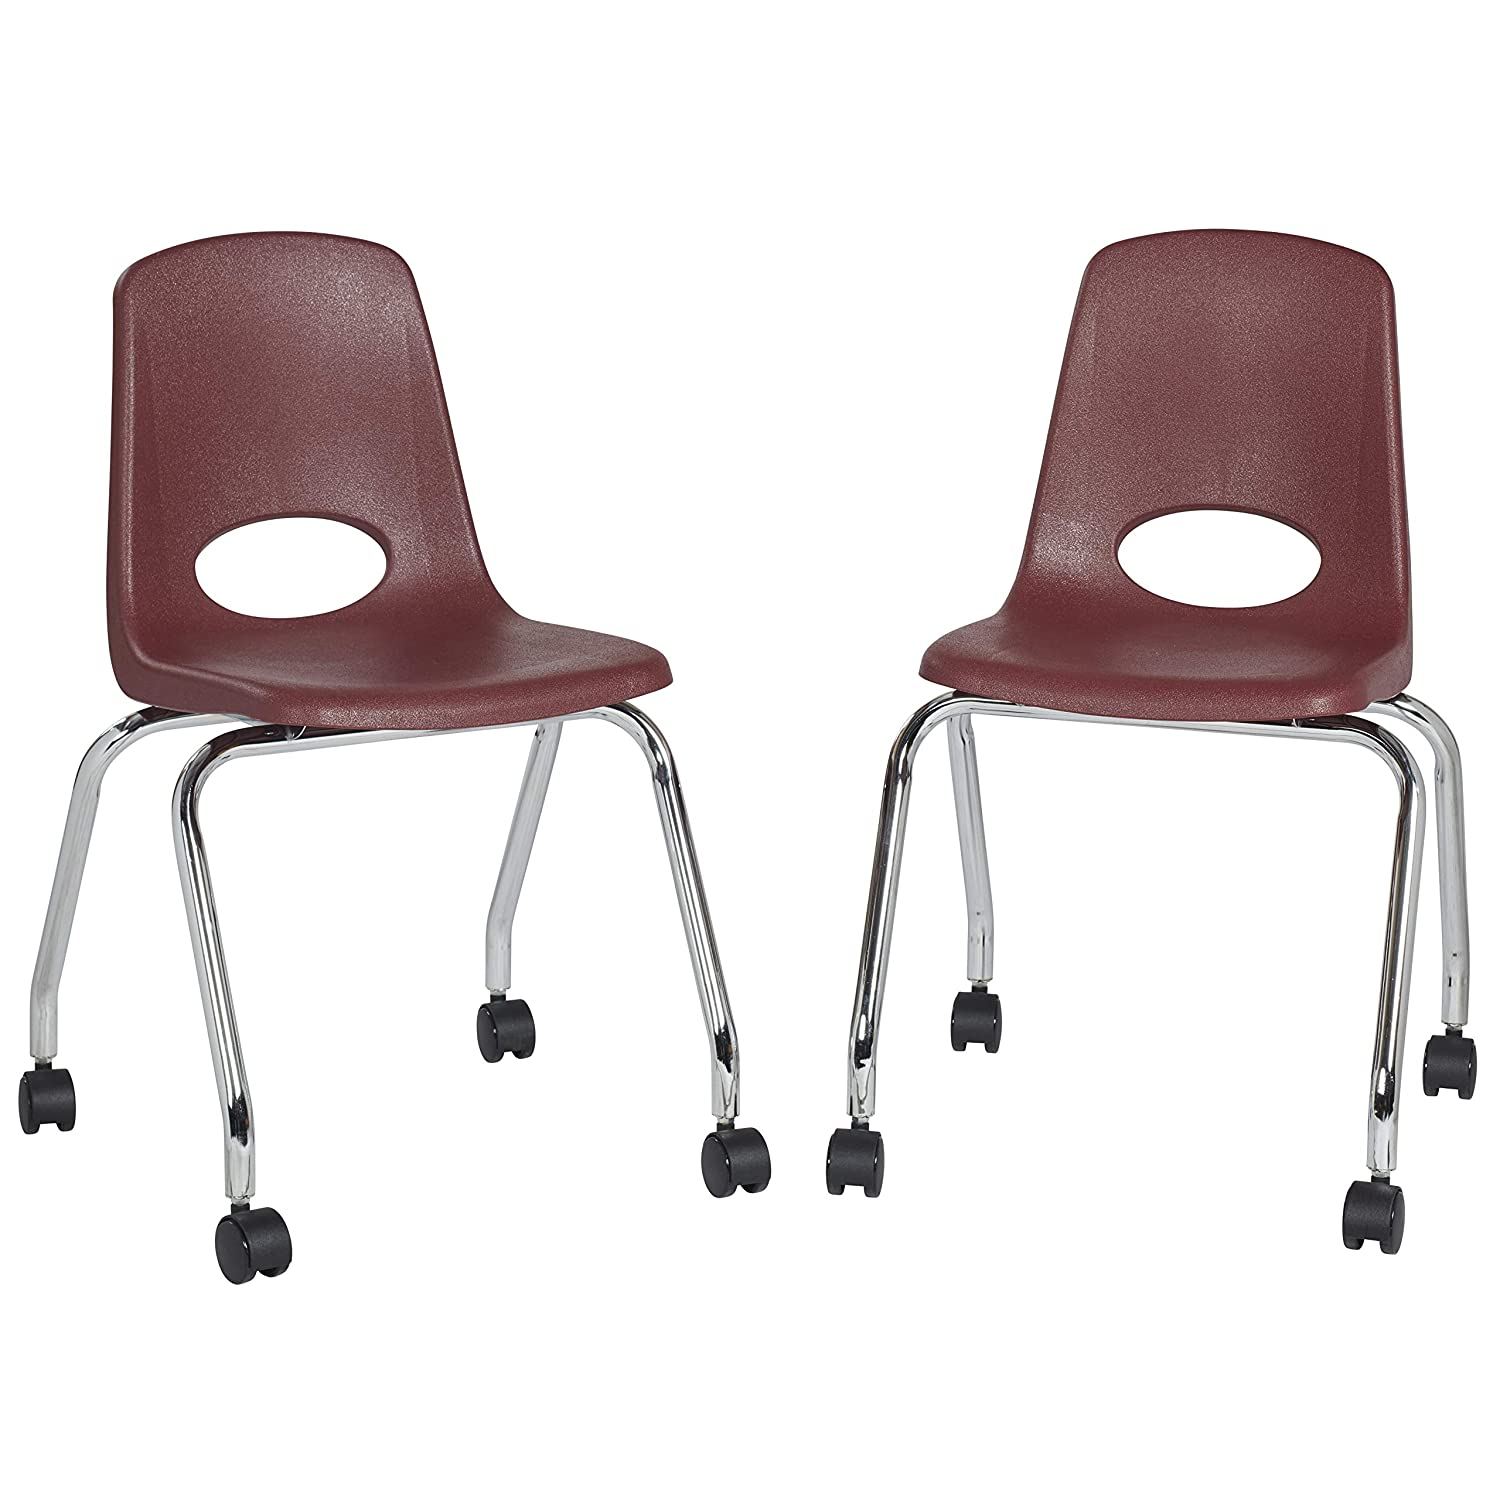 "Factory Direct Partners 18"" Mobile School Chair with Wheels for Kids, Teens and Adults; Ergonomic Seat for in-Home Learning, Classroom or Office - Burgundy (2-Pack) (10372-BY)"